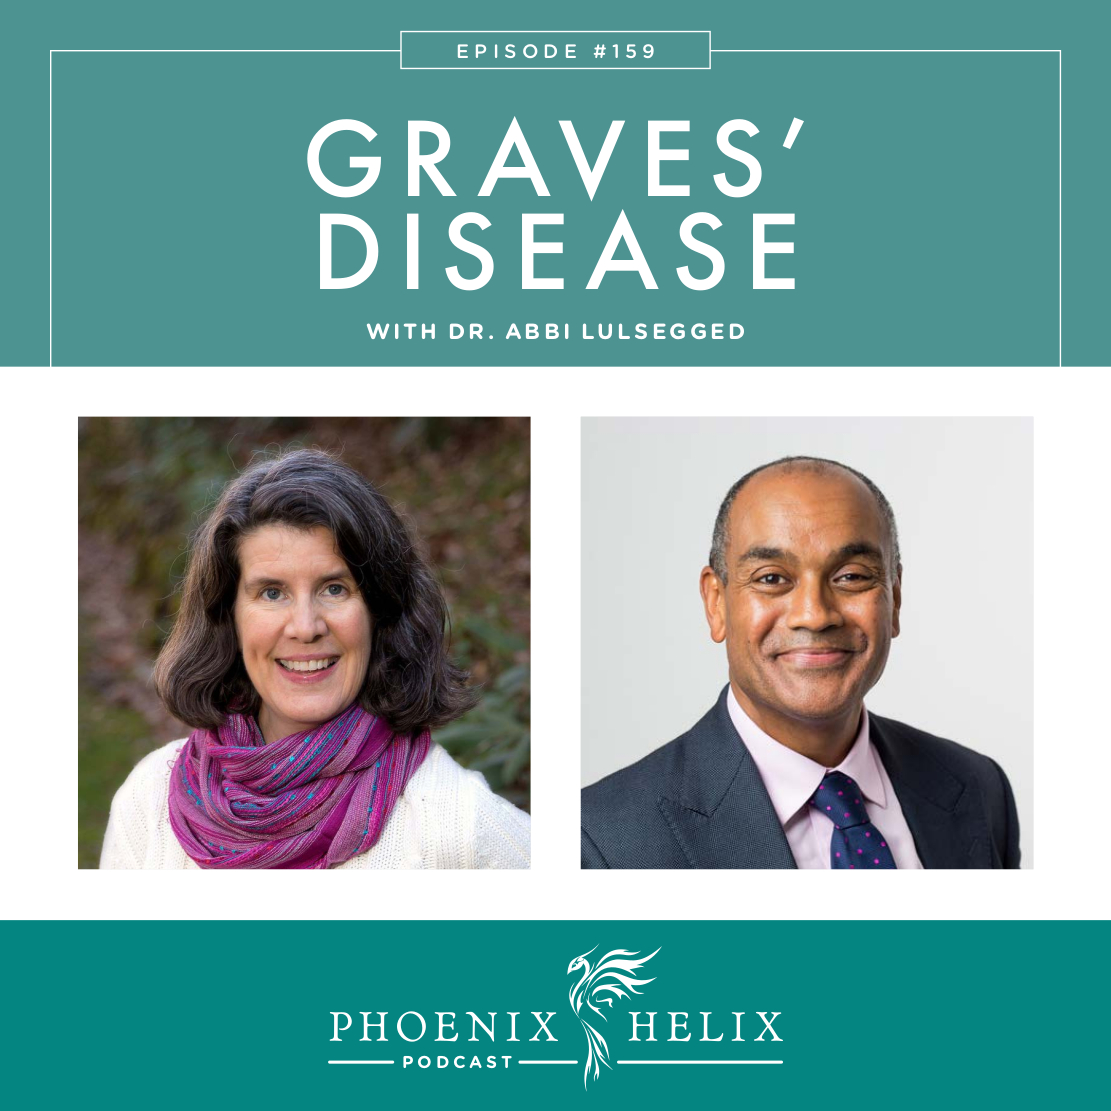 Graves' Disease with Dr. Abbi Lulsegged | Phoenix Helix Podcast